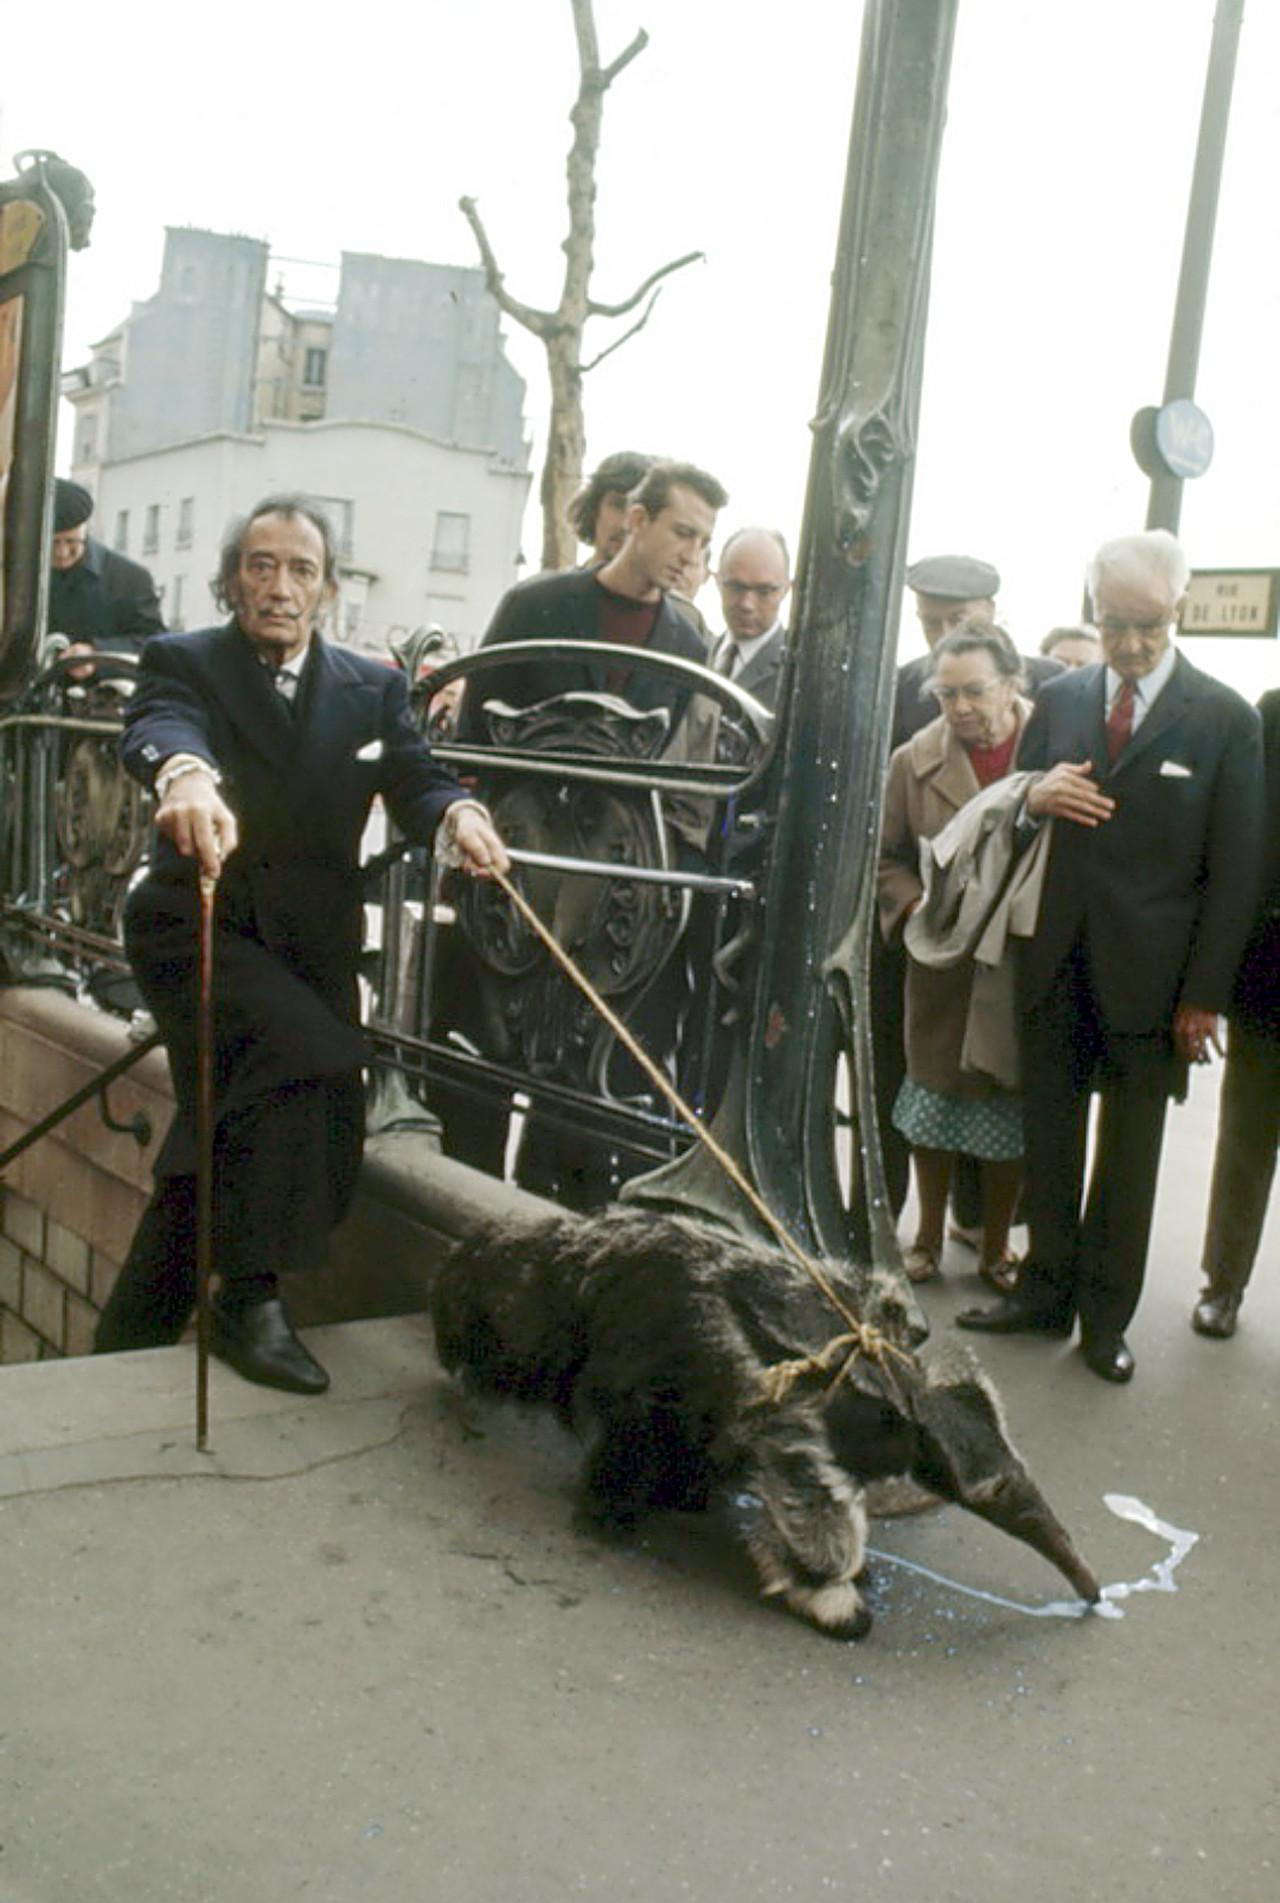 Salvador Dali walking his anteater in Paris like a boss. http://t.co/c53L971vRP